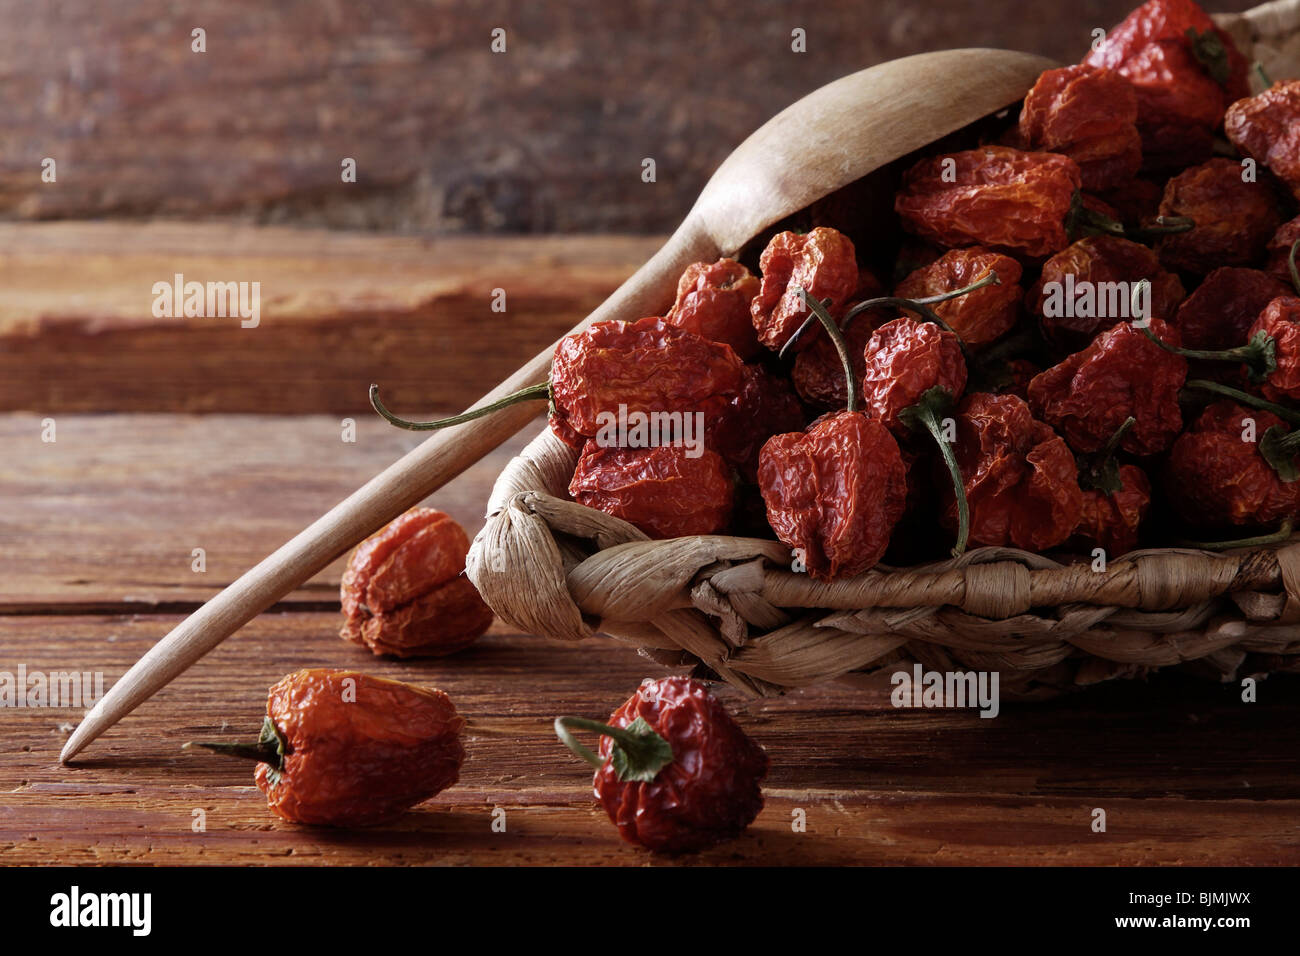 Mini-Peppers (capsicum) in a wicker basket on a rustic wooden background Stock Photo